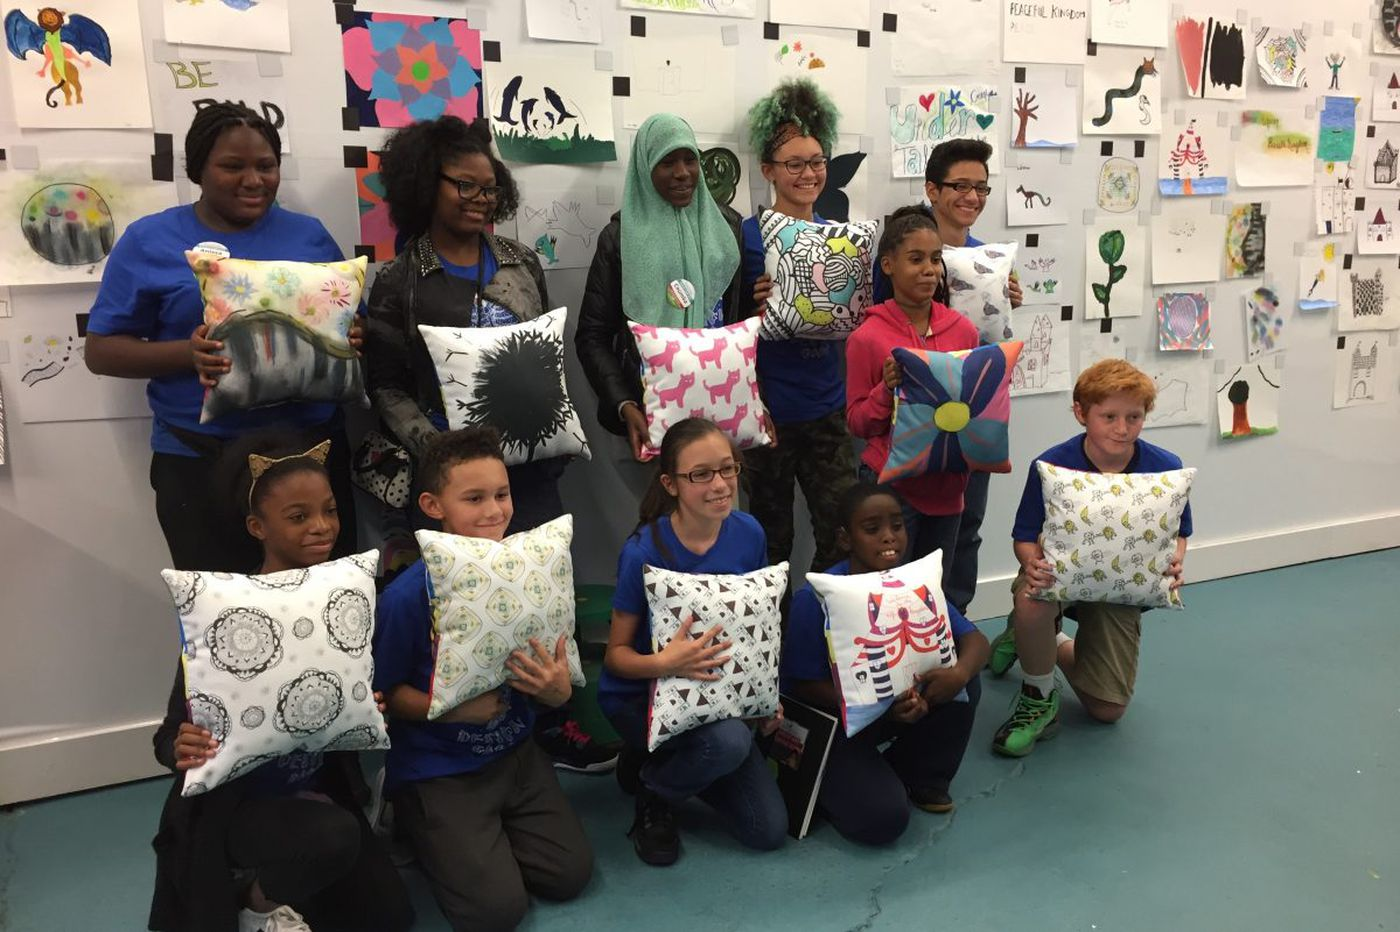 Crate & Barrel to launch a new line of products designed by Philly public school kids